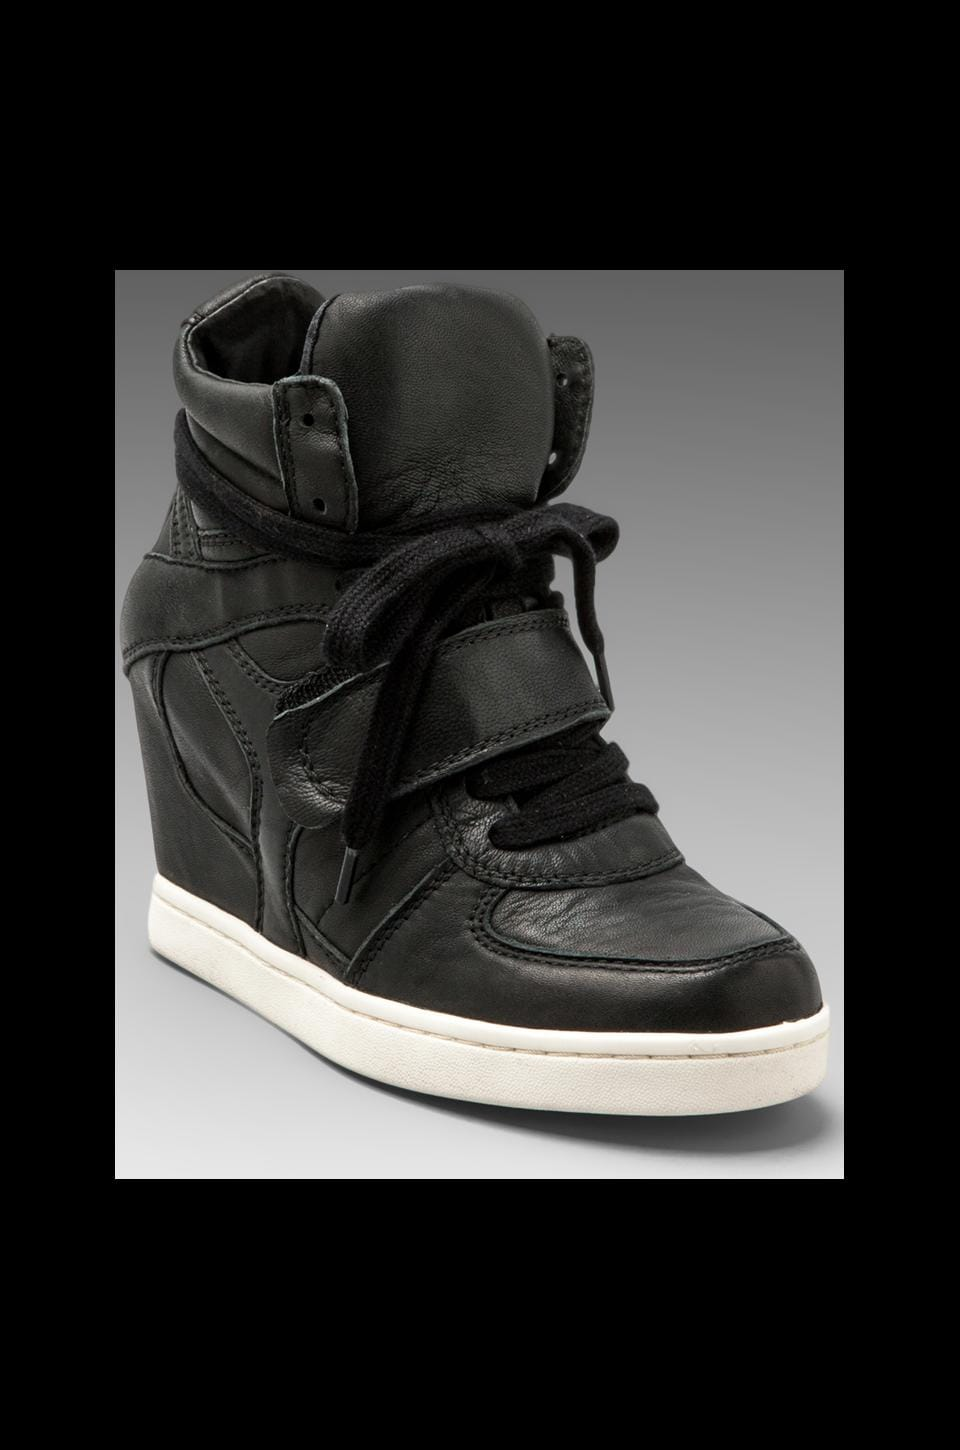 Ash Cool Ter Wedge Sneaker in Black